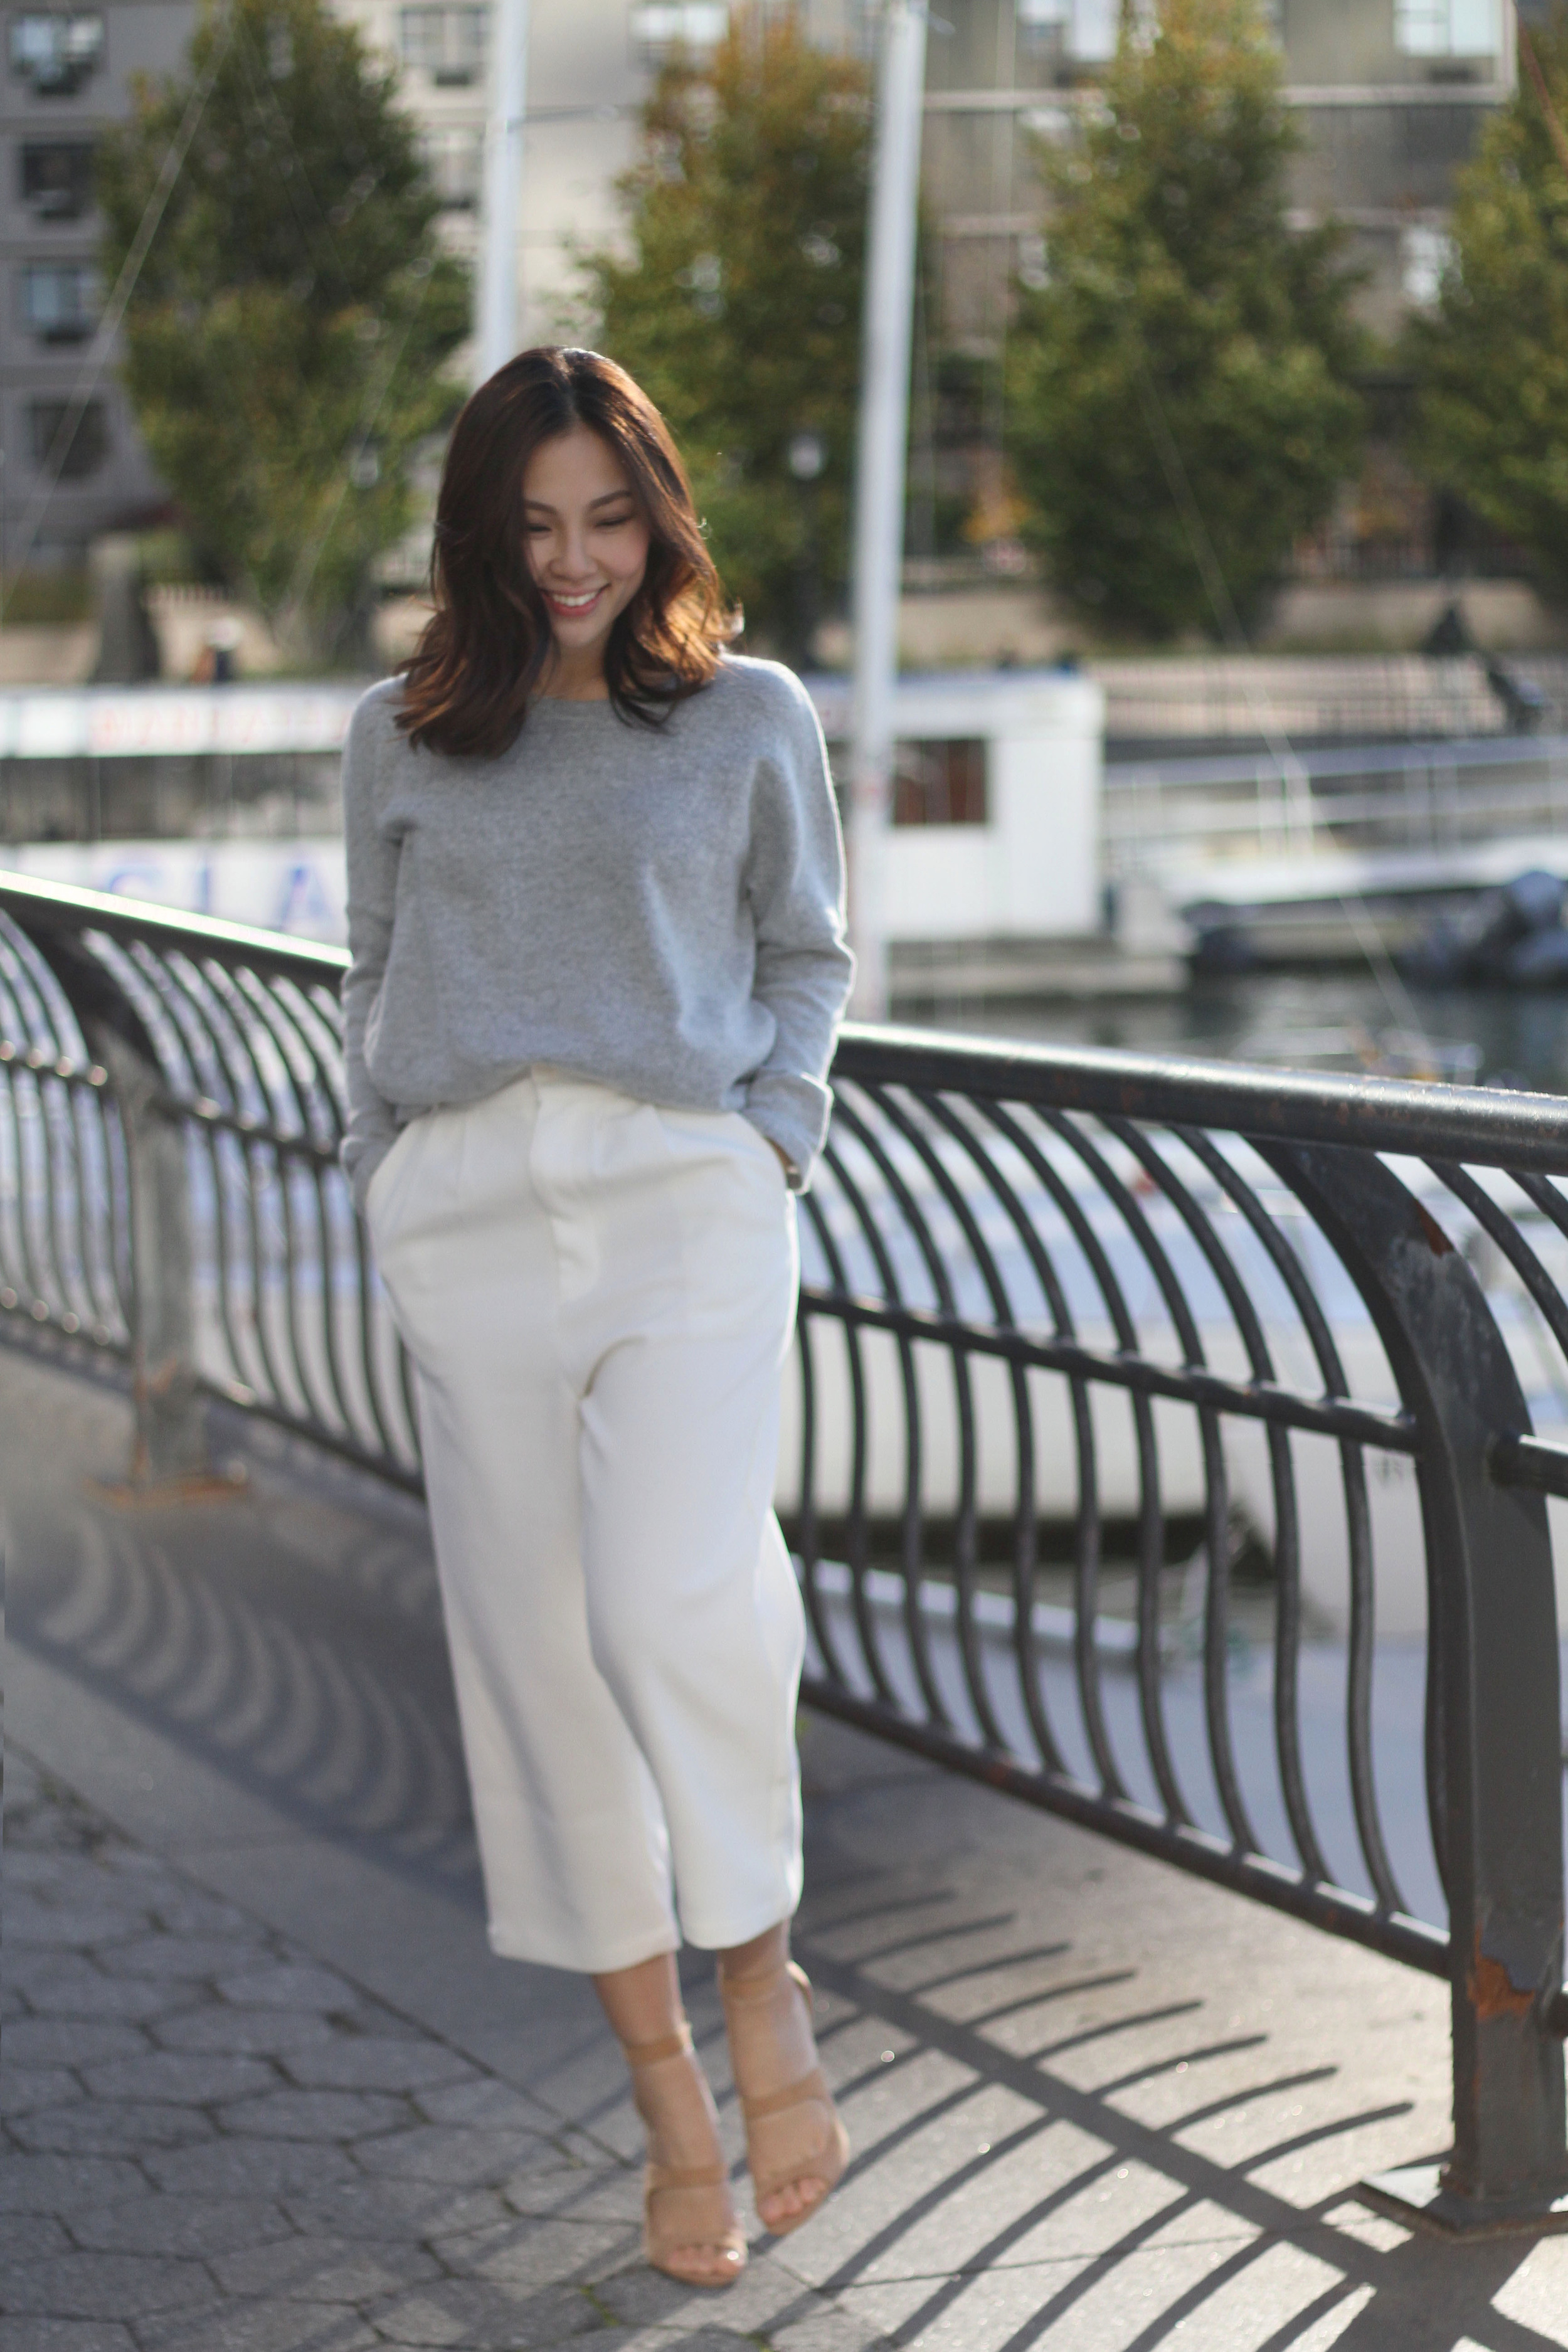 culotte pants and grey sweater.jpg